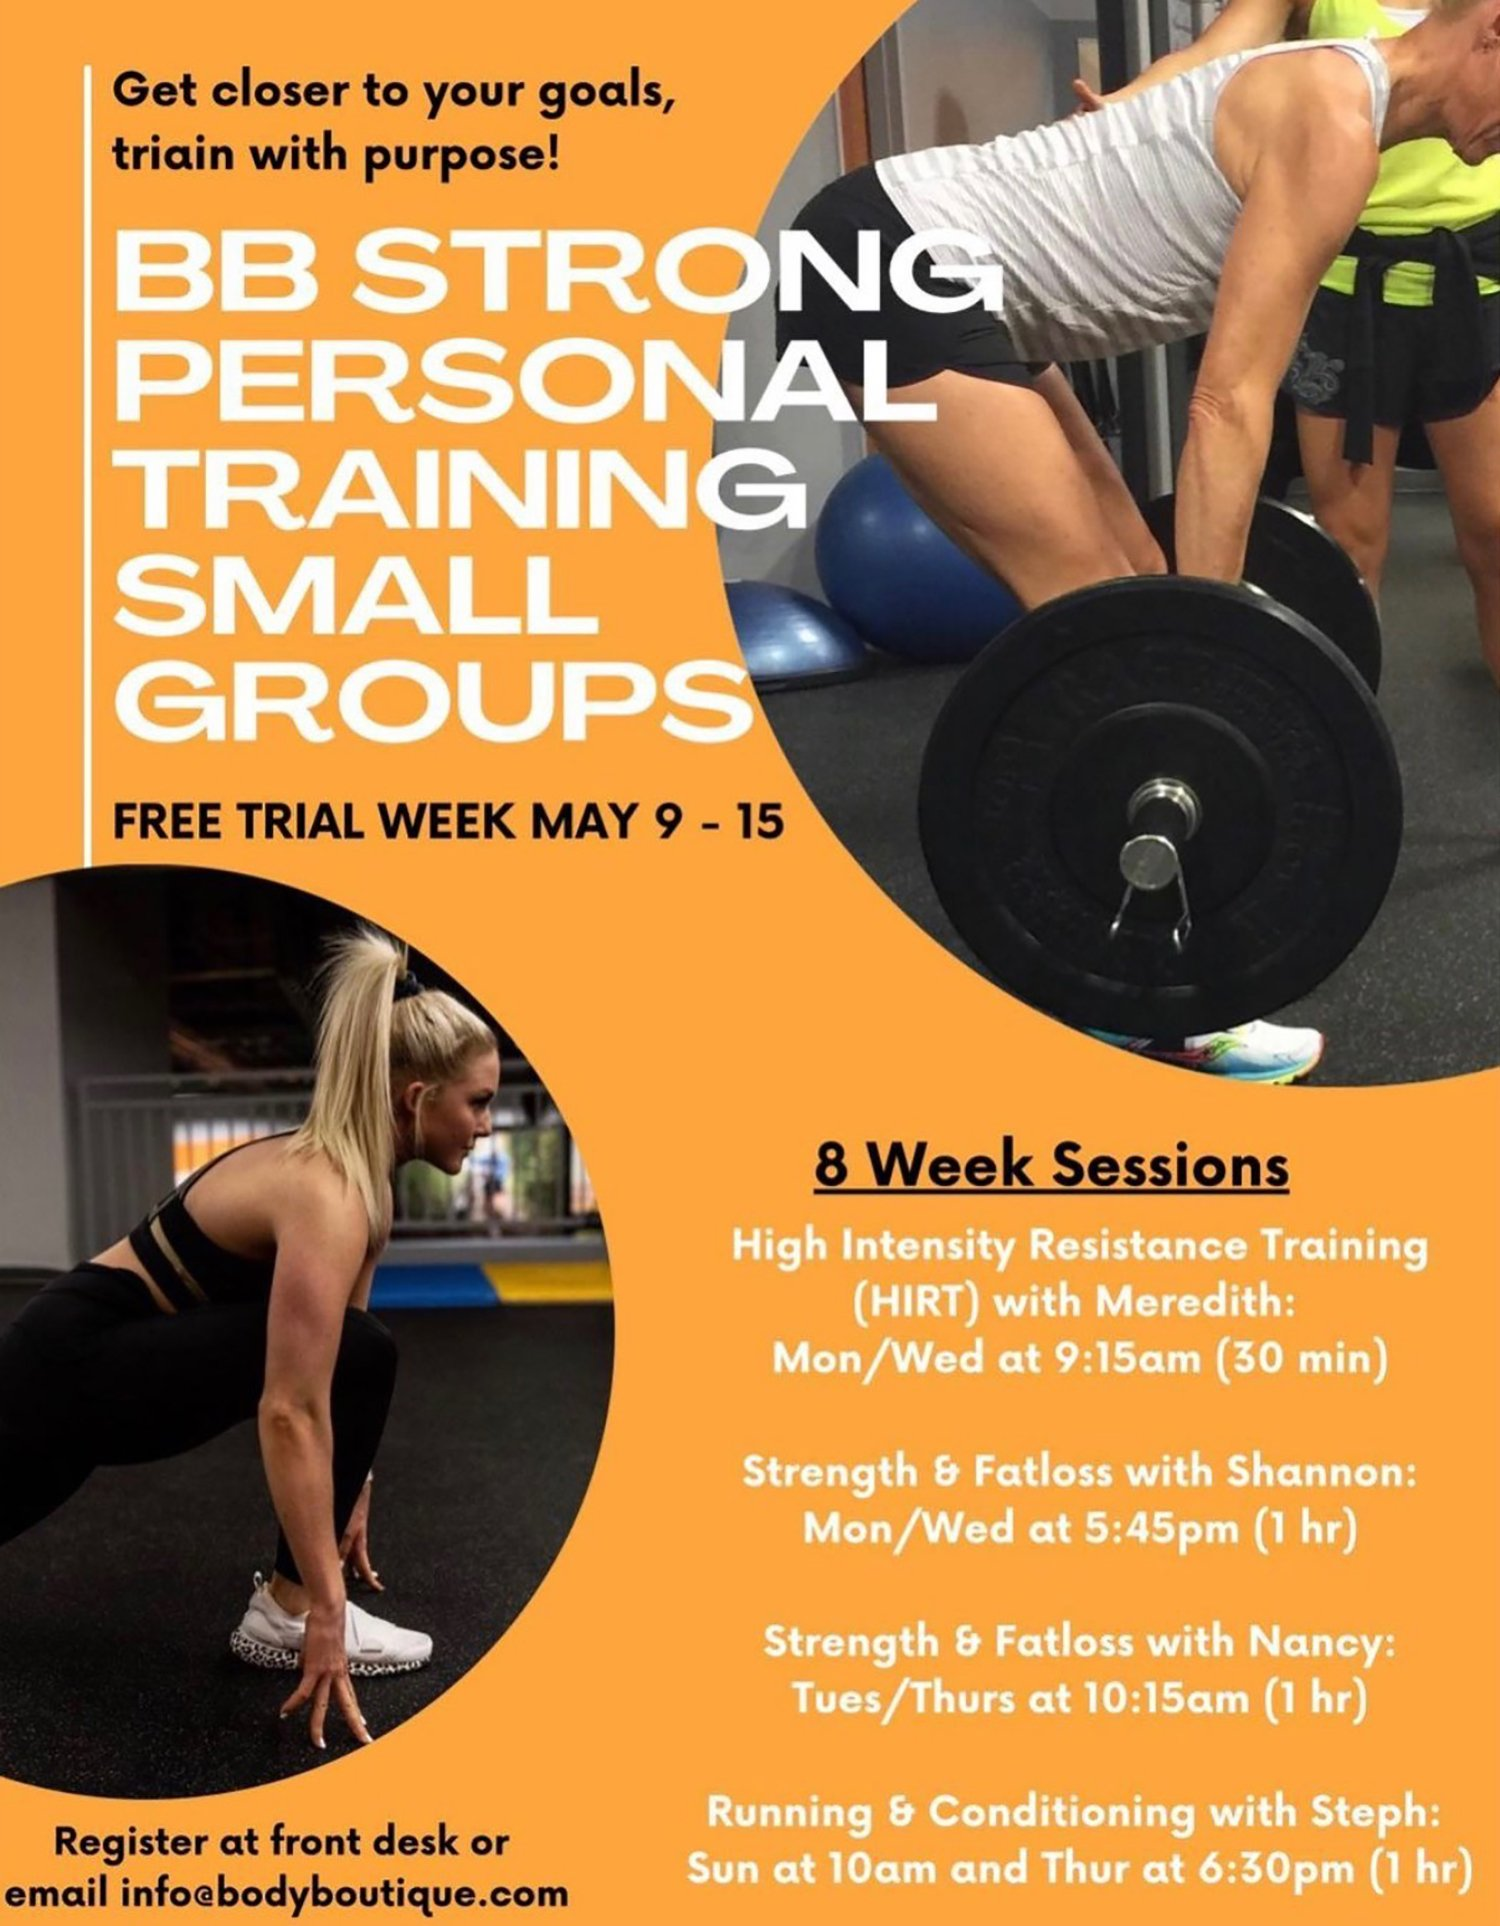 BB Strong Personal Training - Small Group Training